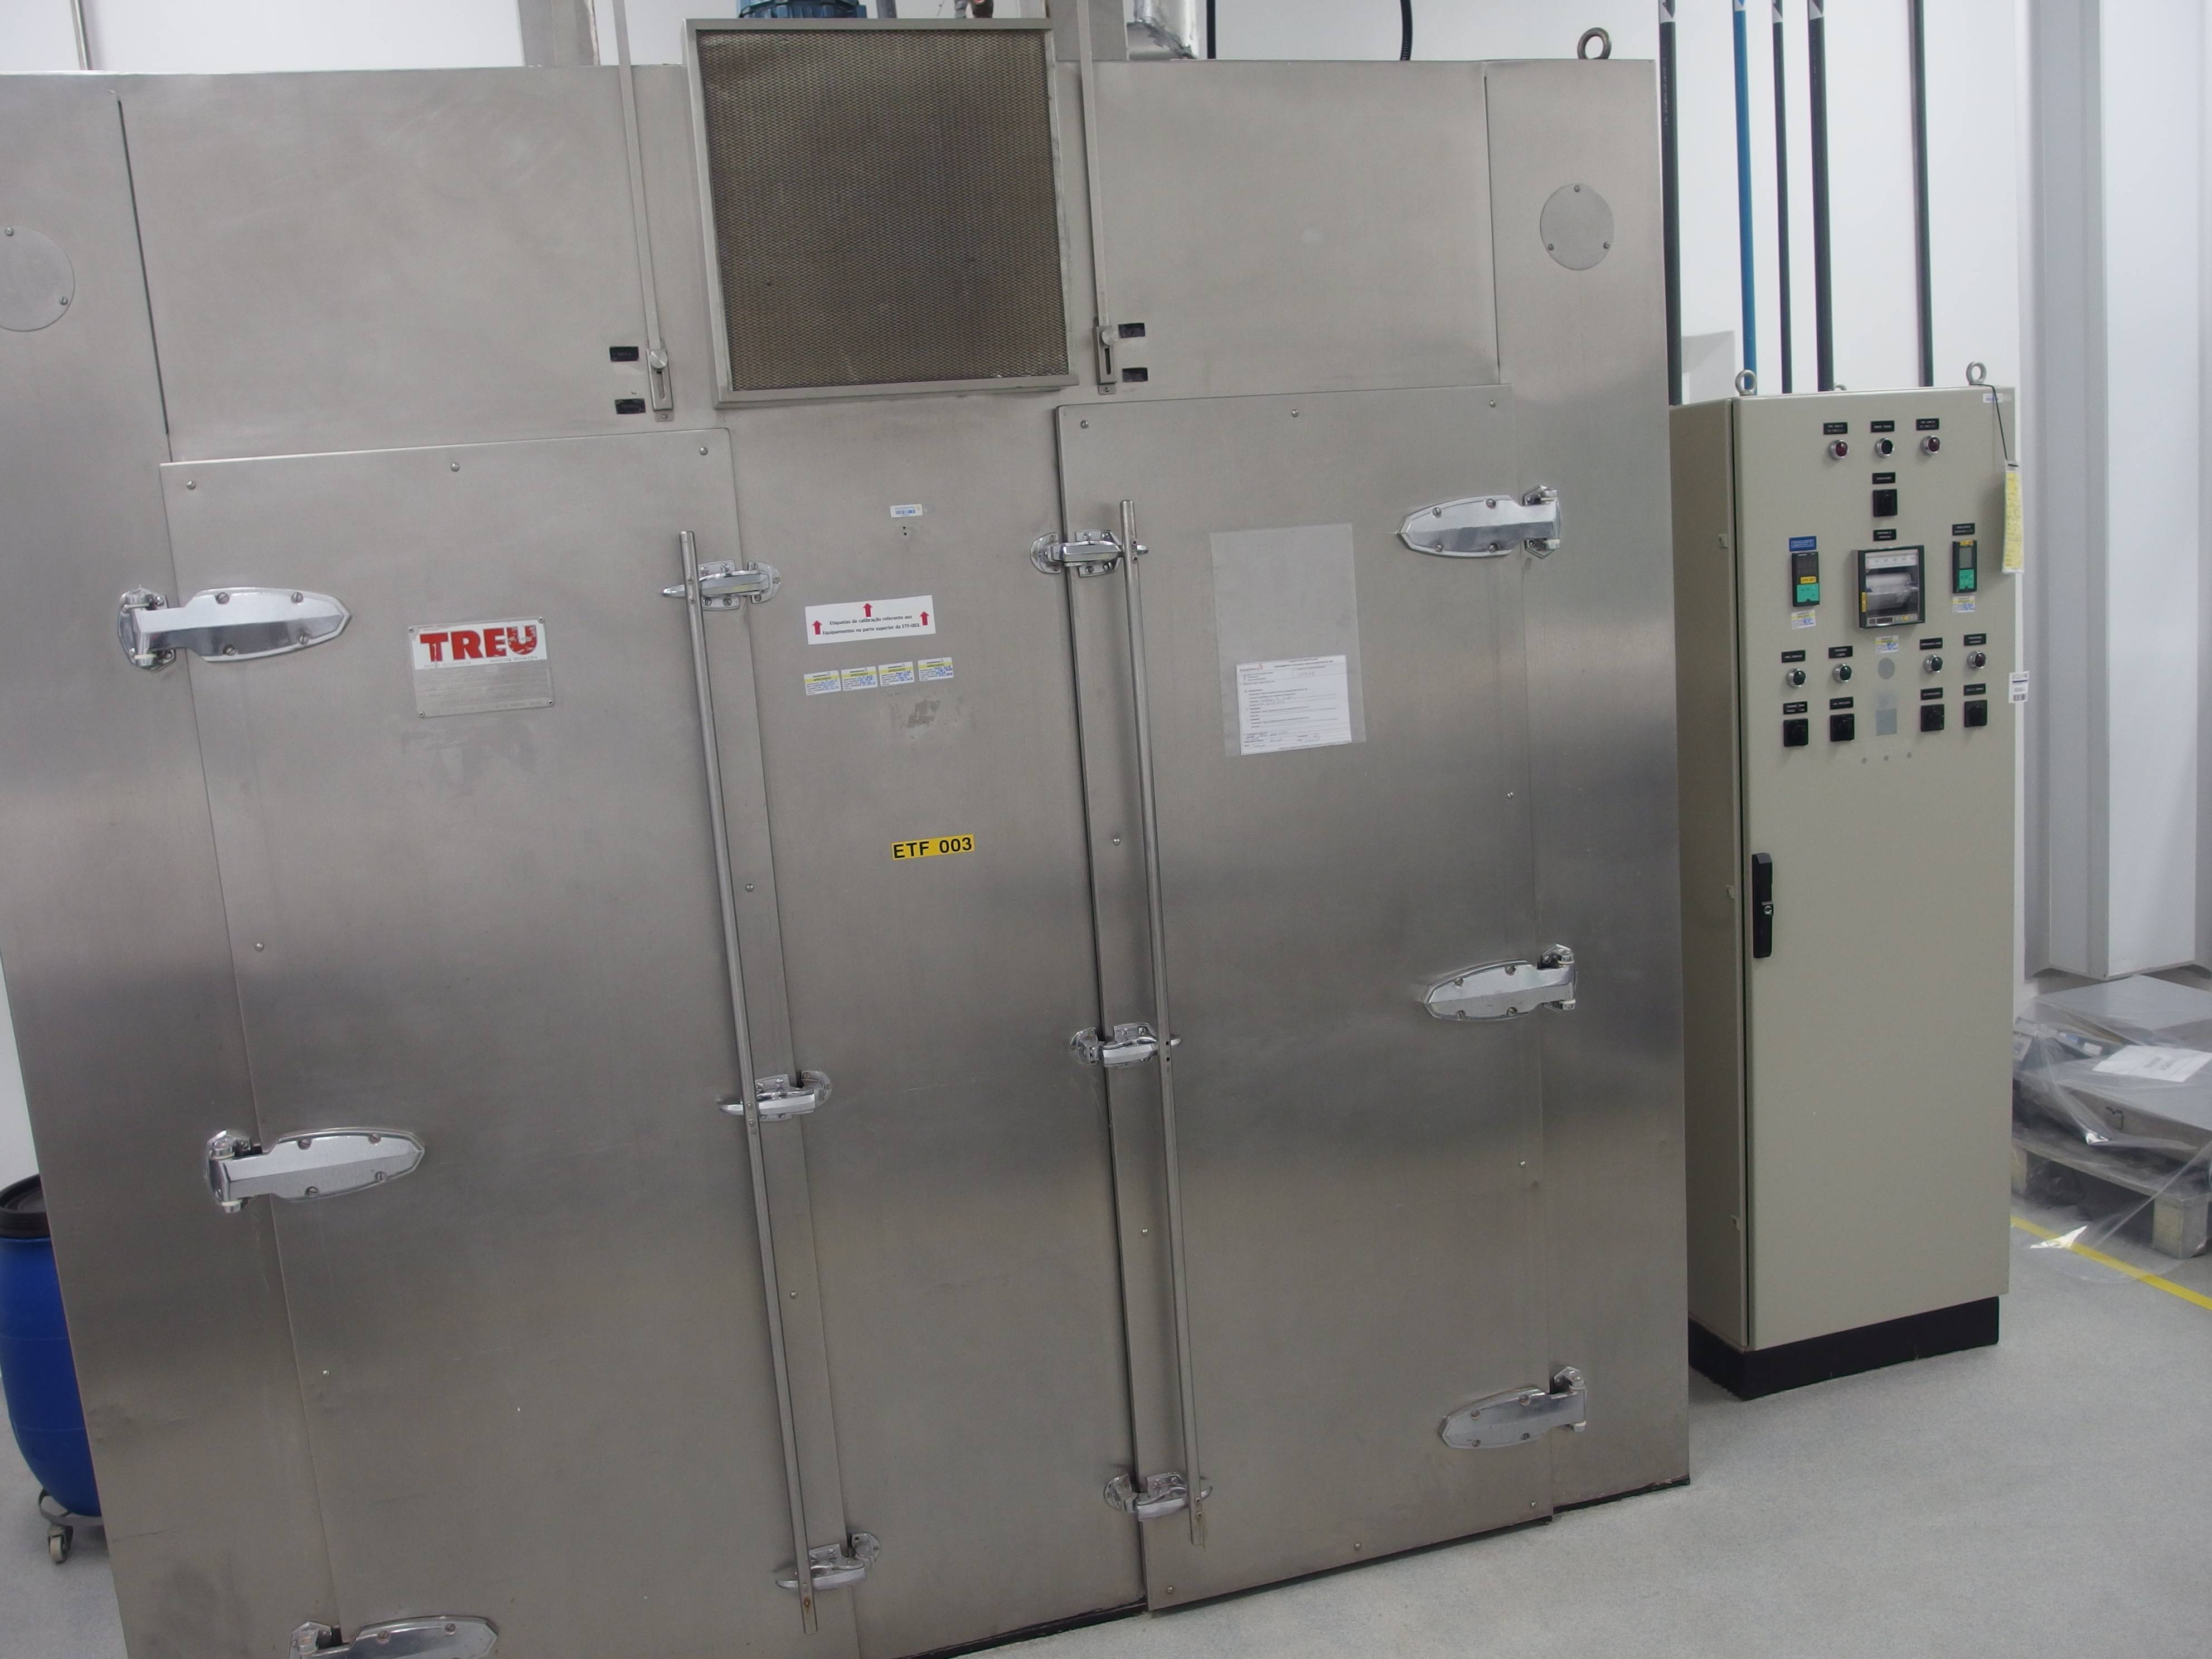 Treu Stainless Steel Air Circulation Dryer Chamber with Two Charging Cart